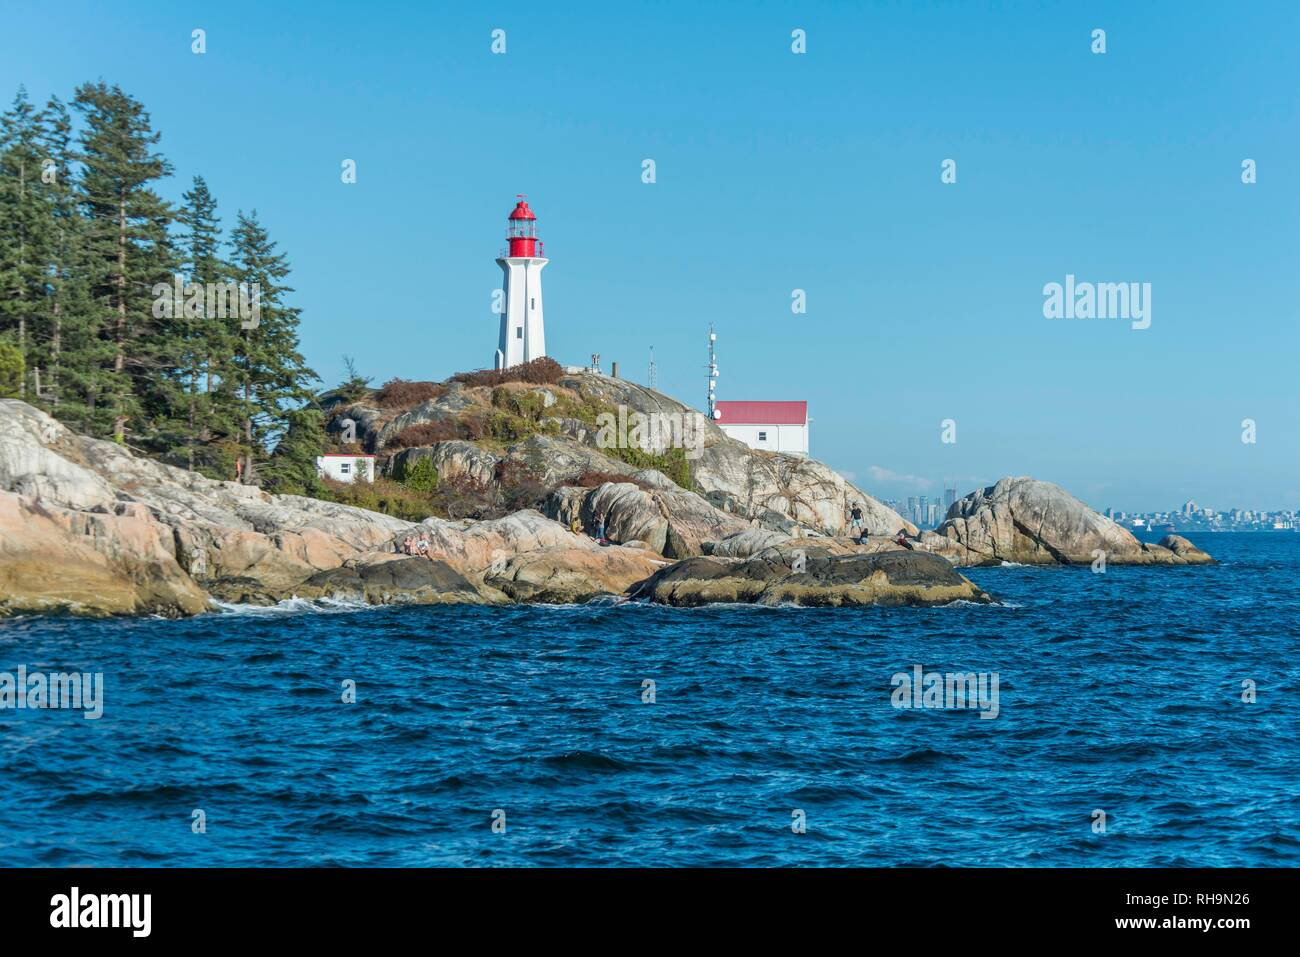 Lighthouse, Point Atkinson Lighthouse, Howe Sound, Vancouver, British Columbia, Canada - Stock Image